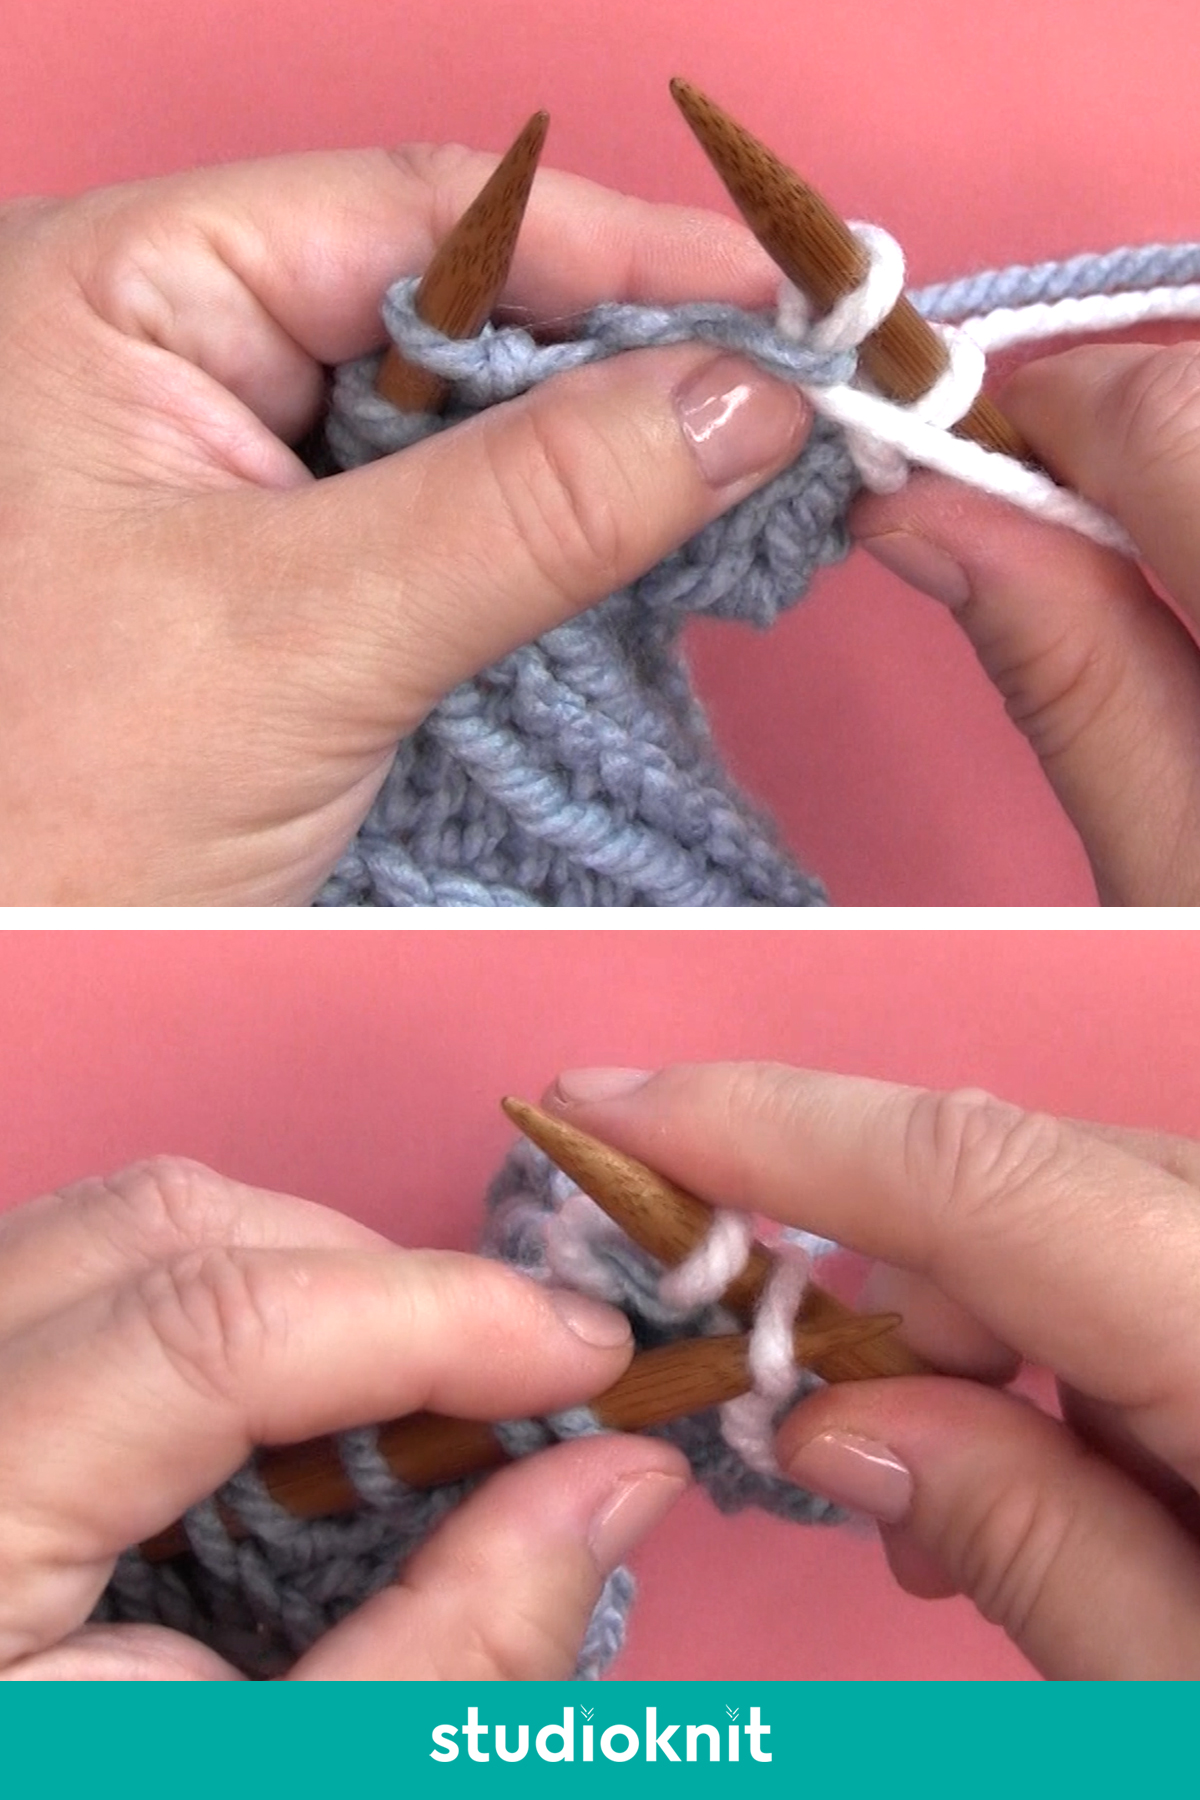 Demonstration of casting off purlwise with hands, yarn, and knitting needles.